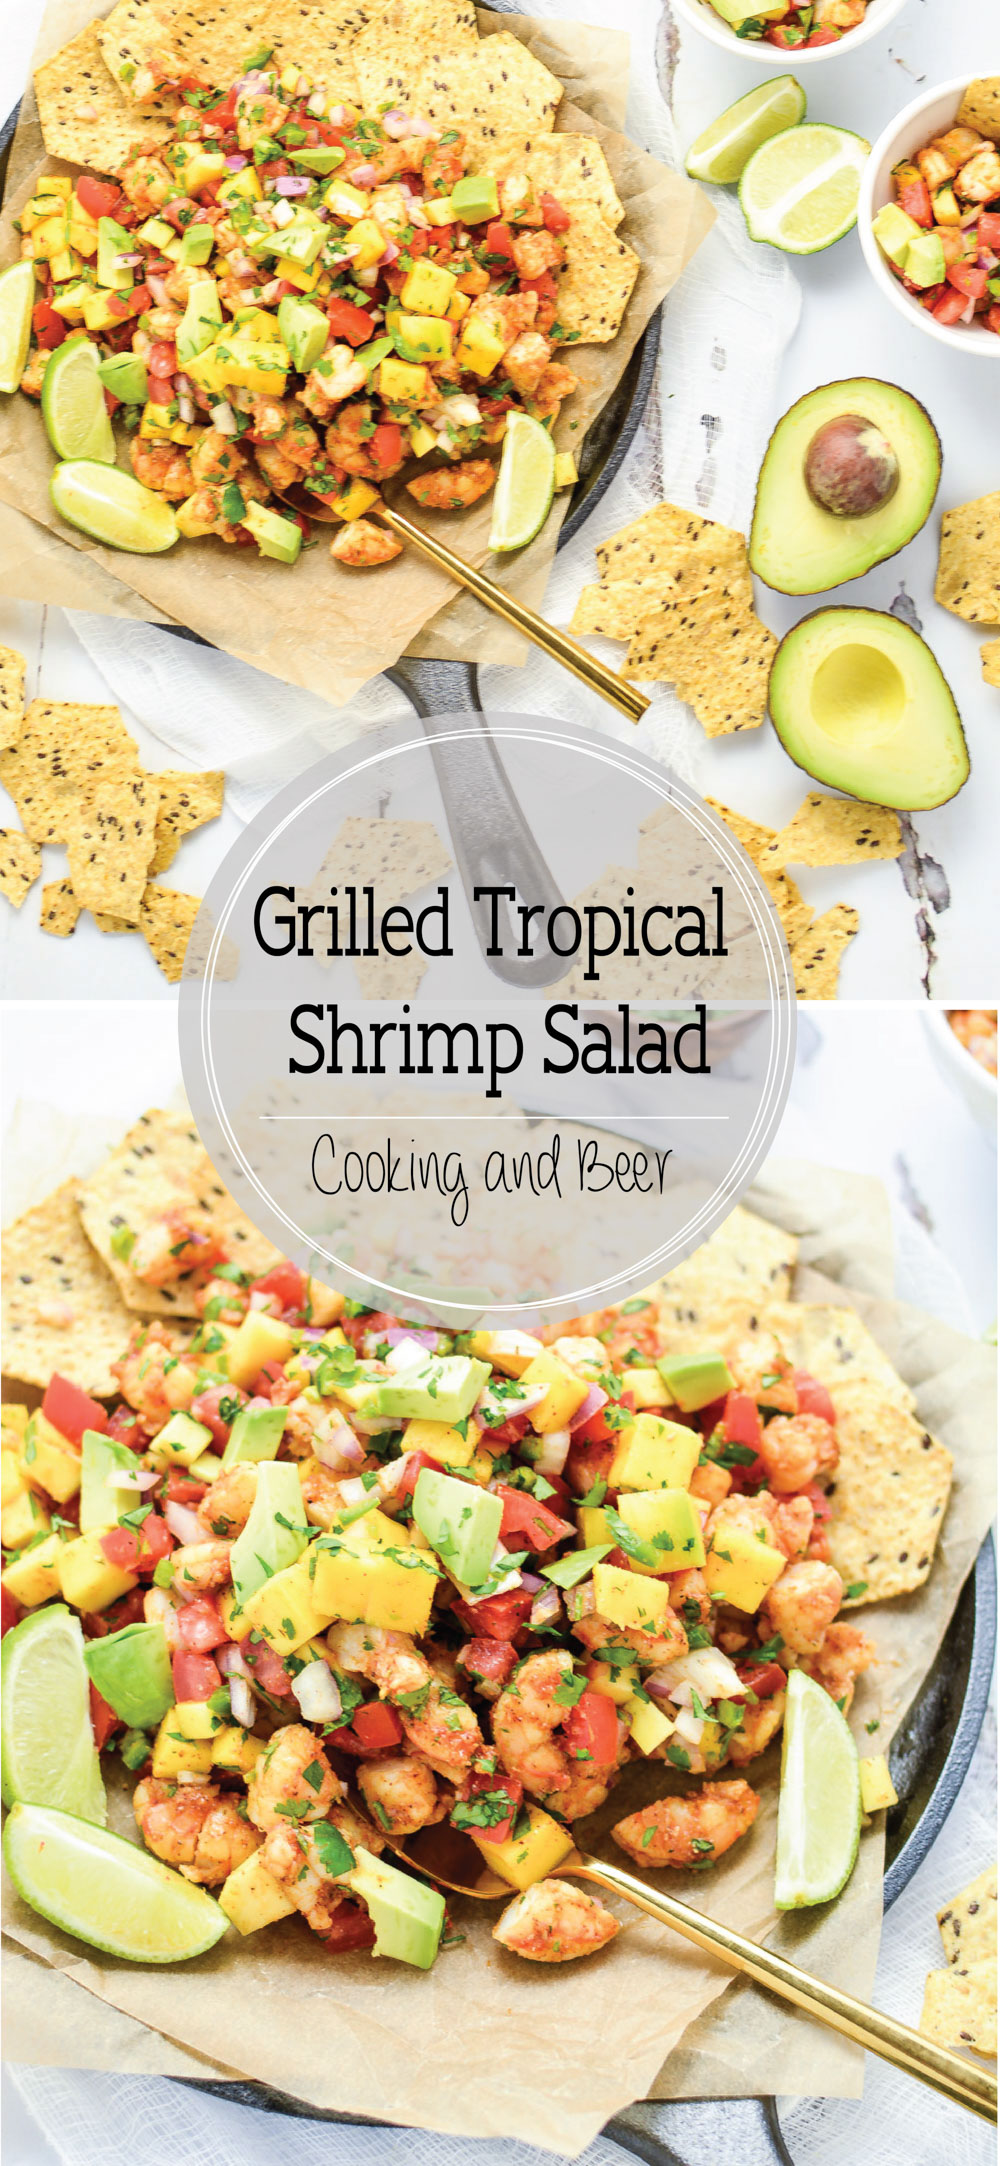 Grilled Tropical Shrimp Salad is a bright and summery salad that's perfect for your Memorial Day picnic!